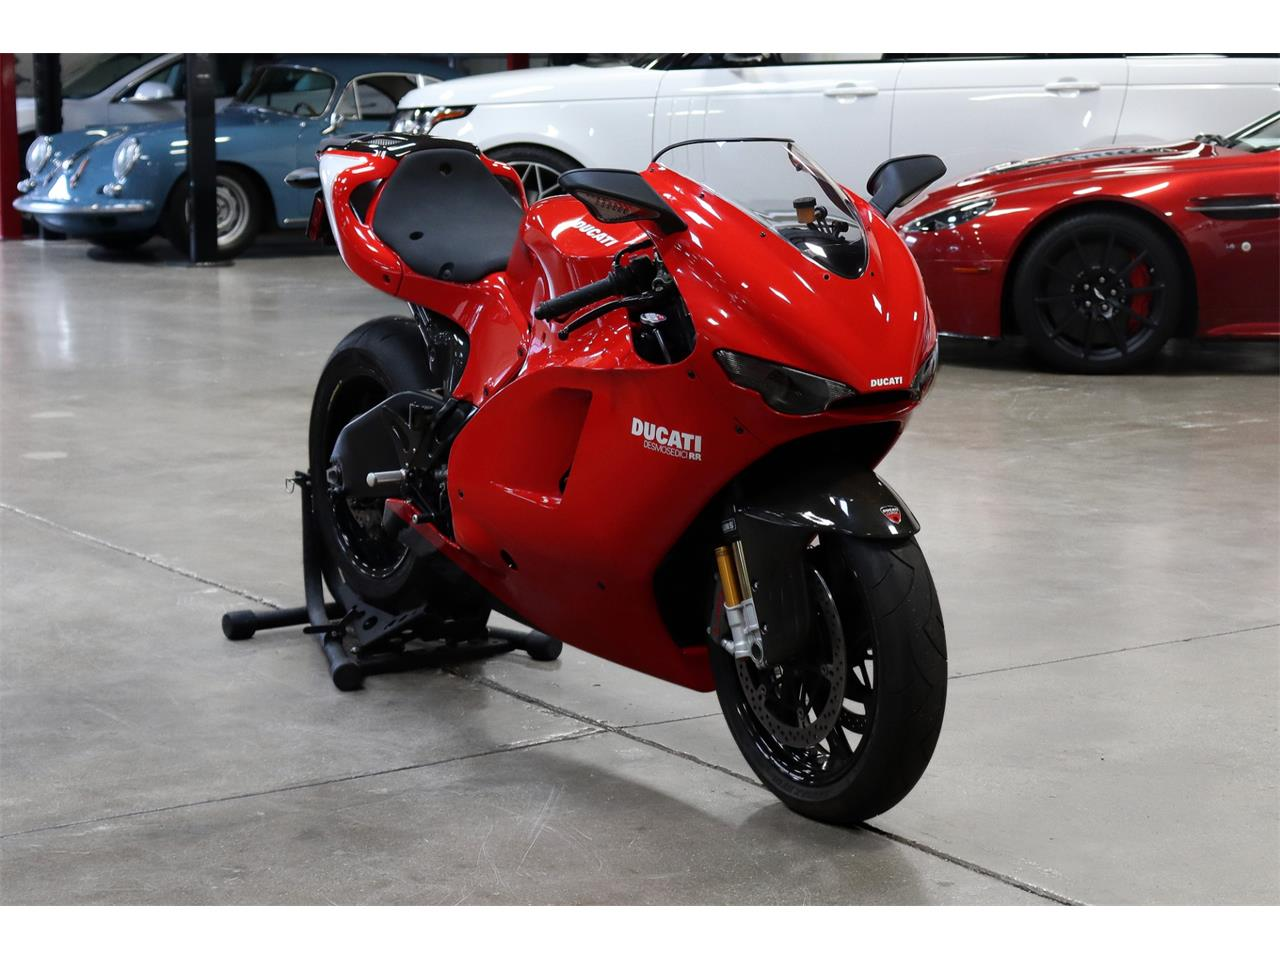 2008 Ducati Motorcycle (CC-1442685) for sale in San Carlos, California